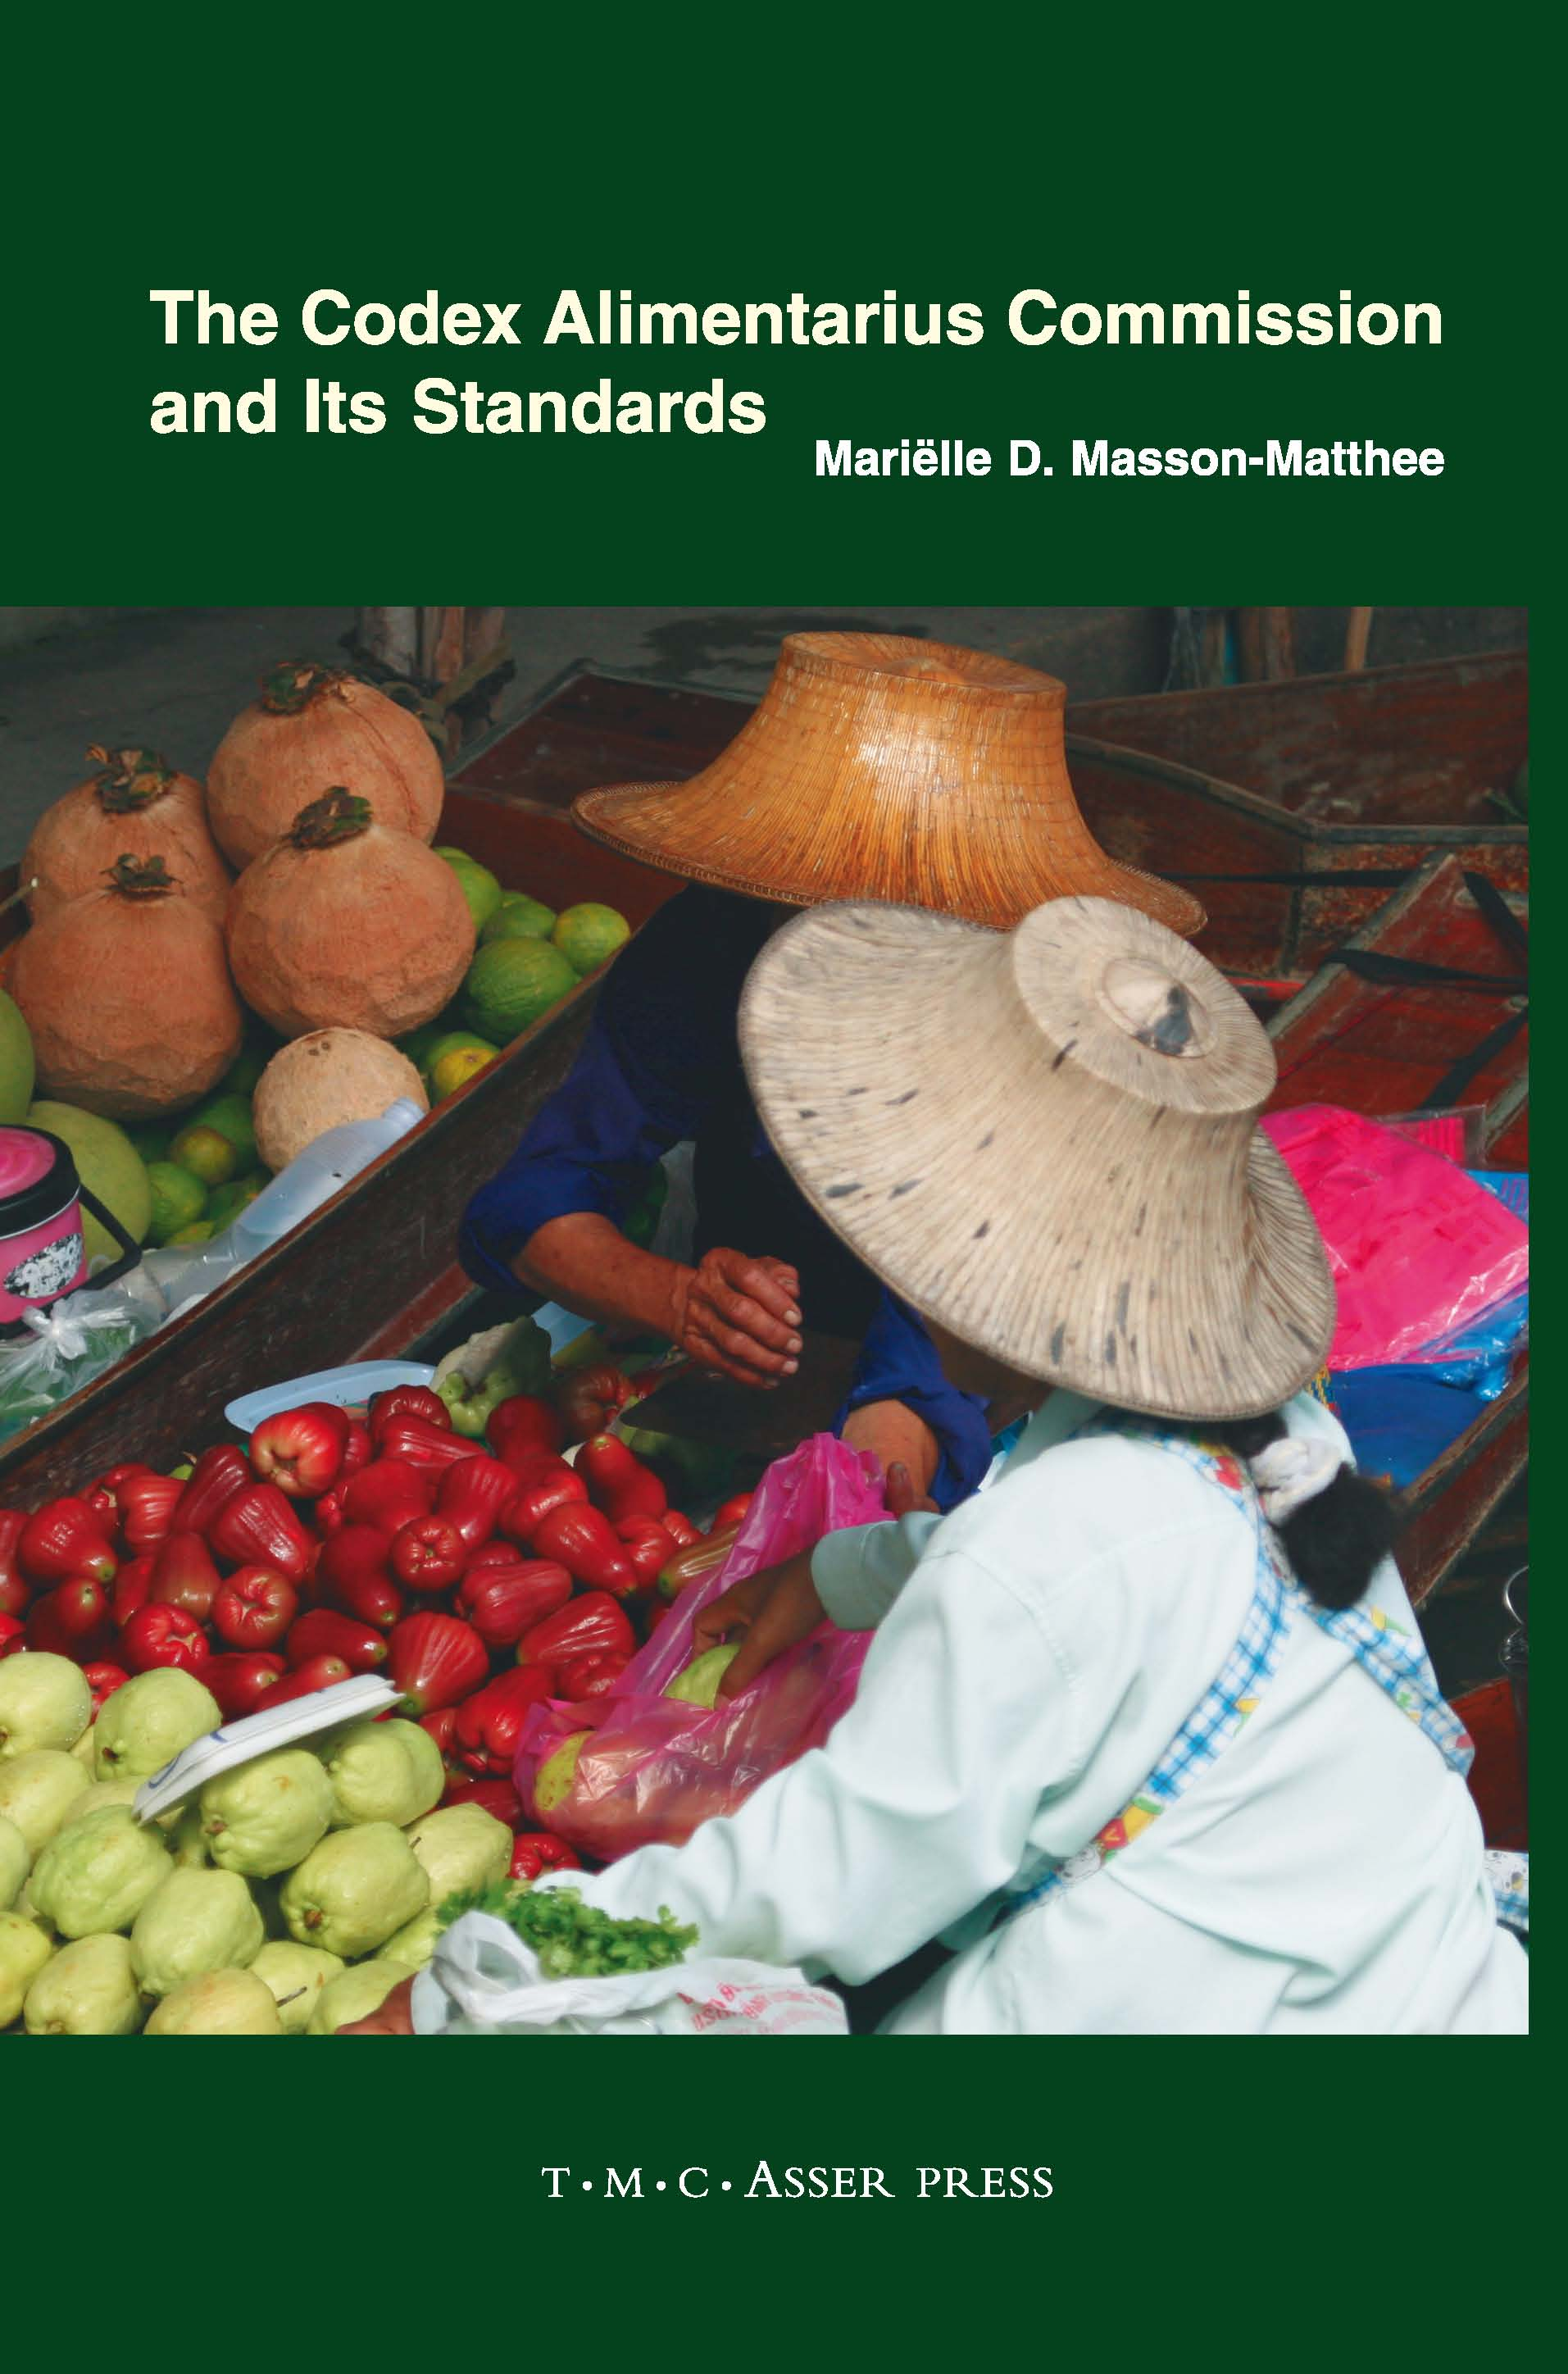 The Codex Alimentarius Commission and Its Standards